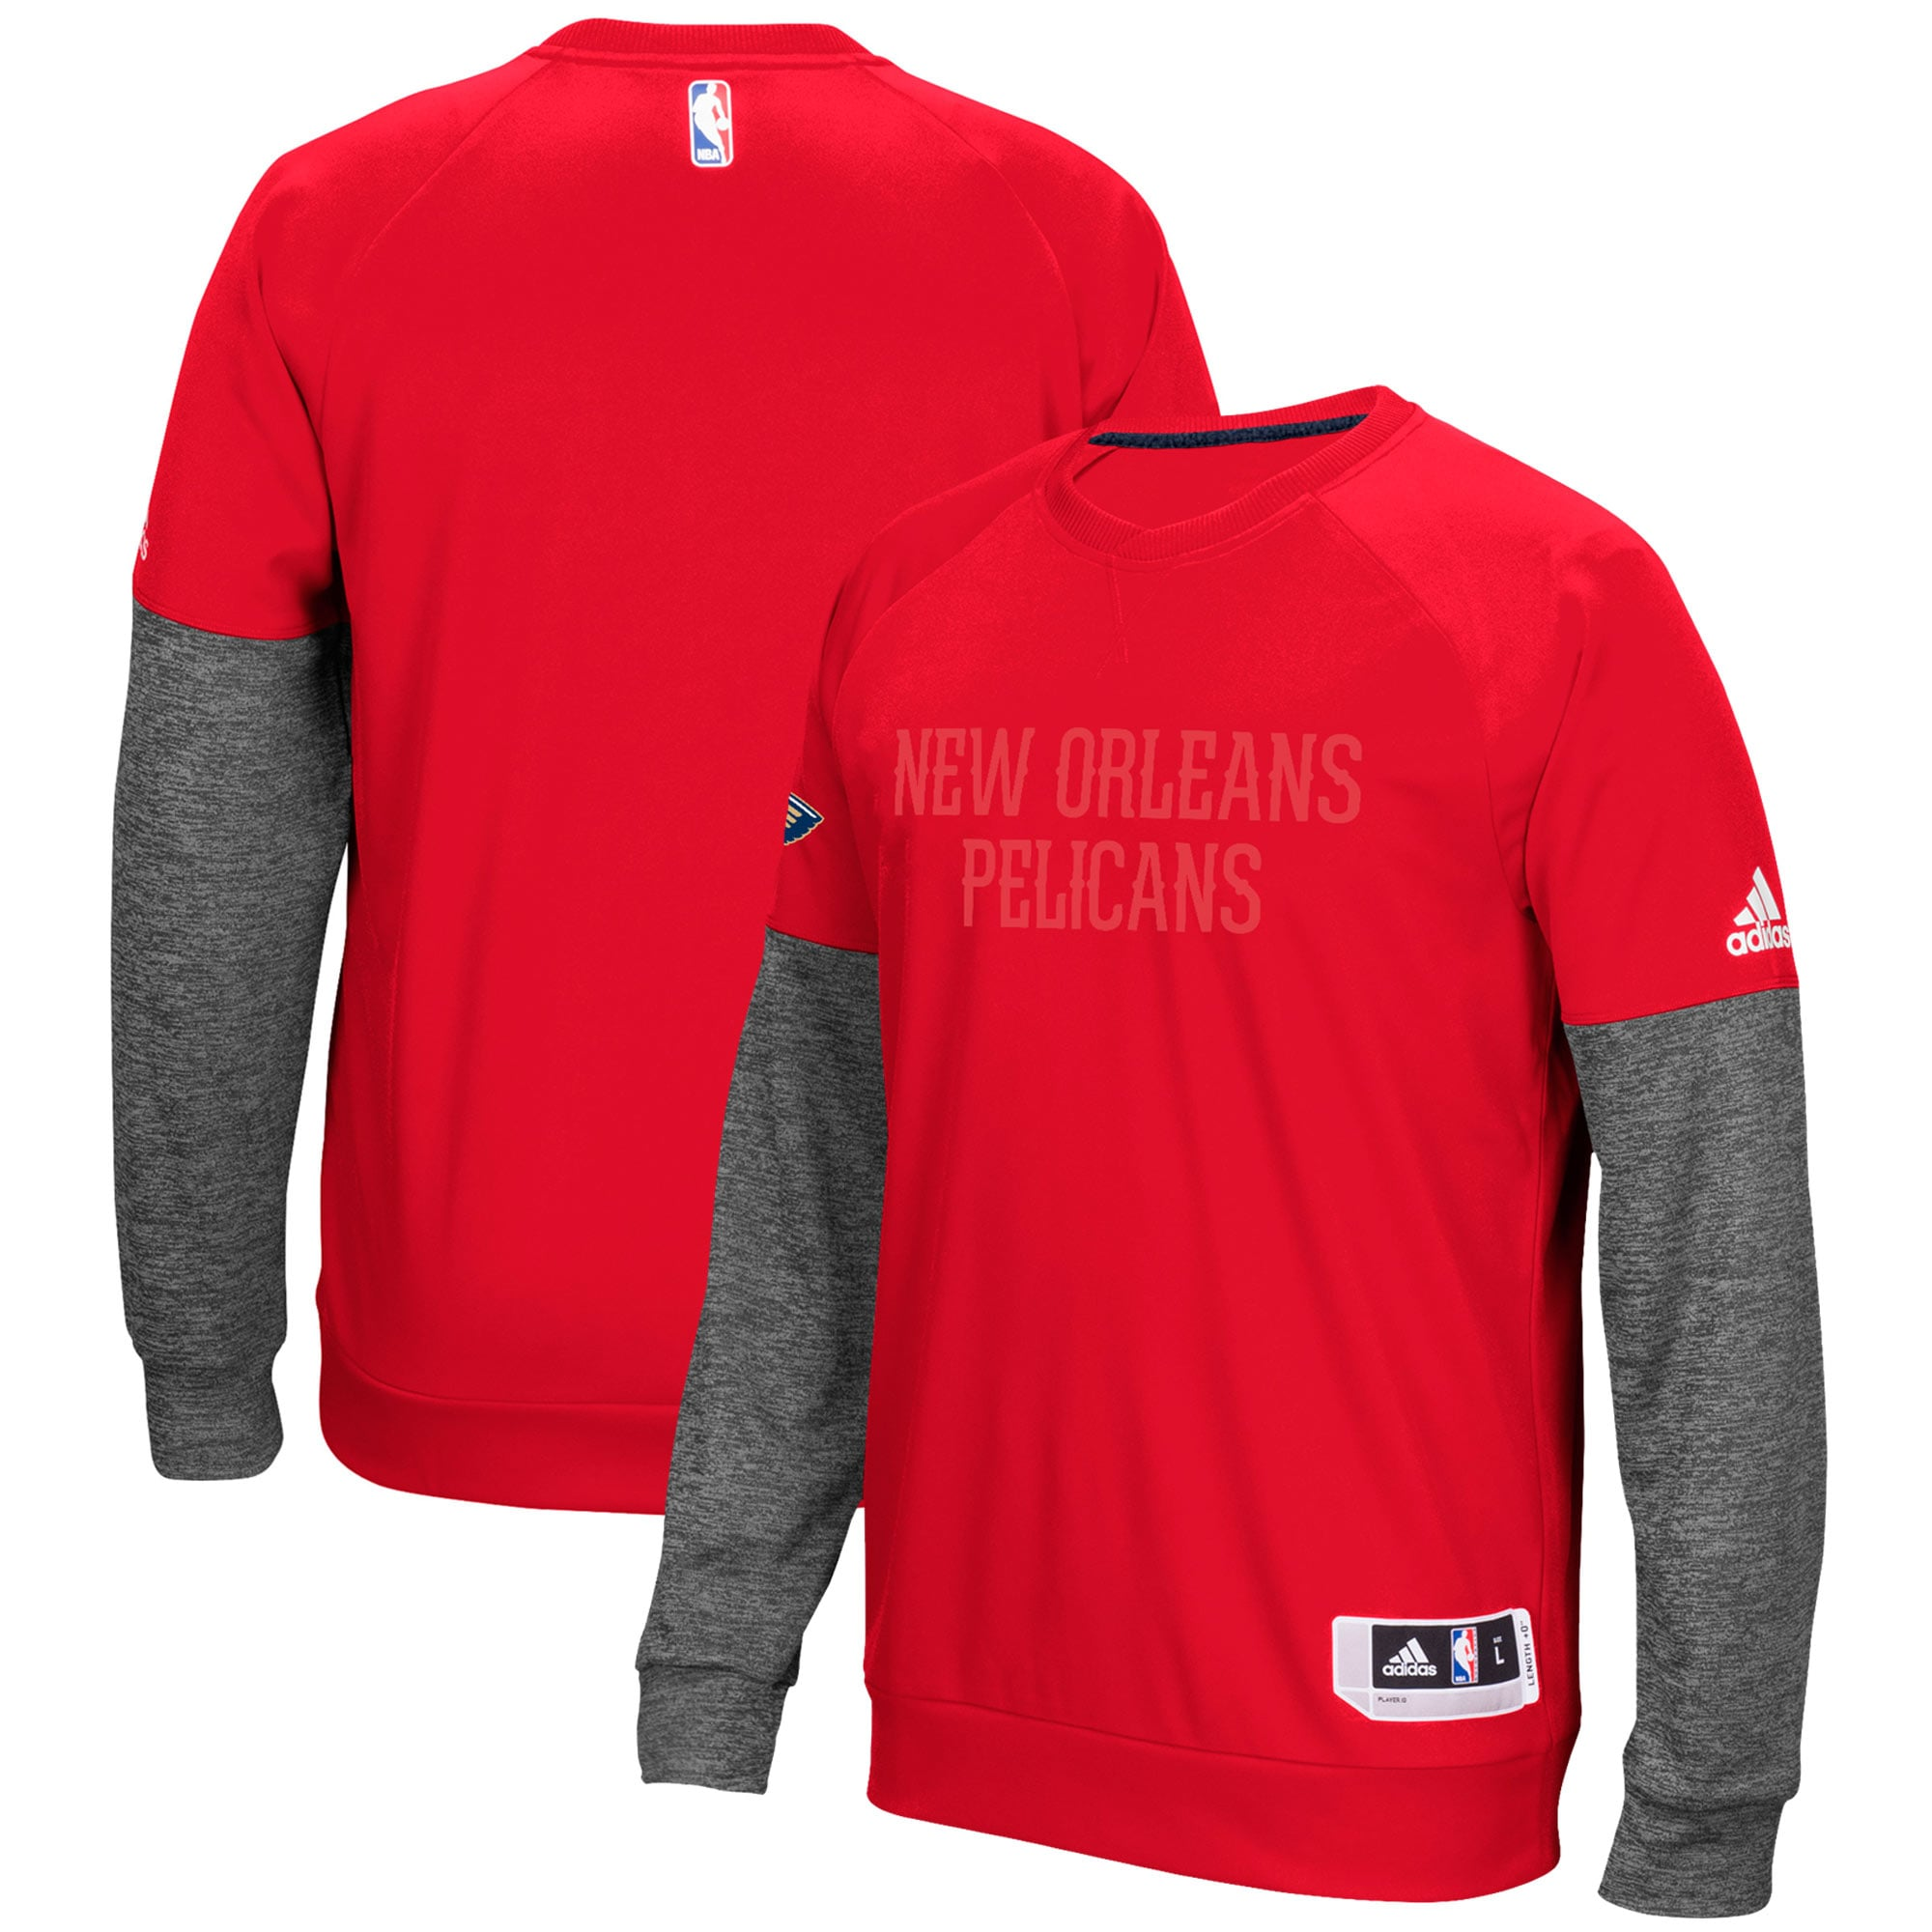 New Orleans Pelicans adidas 2016 Christmas Day Second Half Pullover Sweatshirt - Red